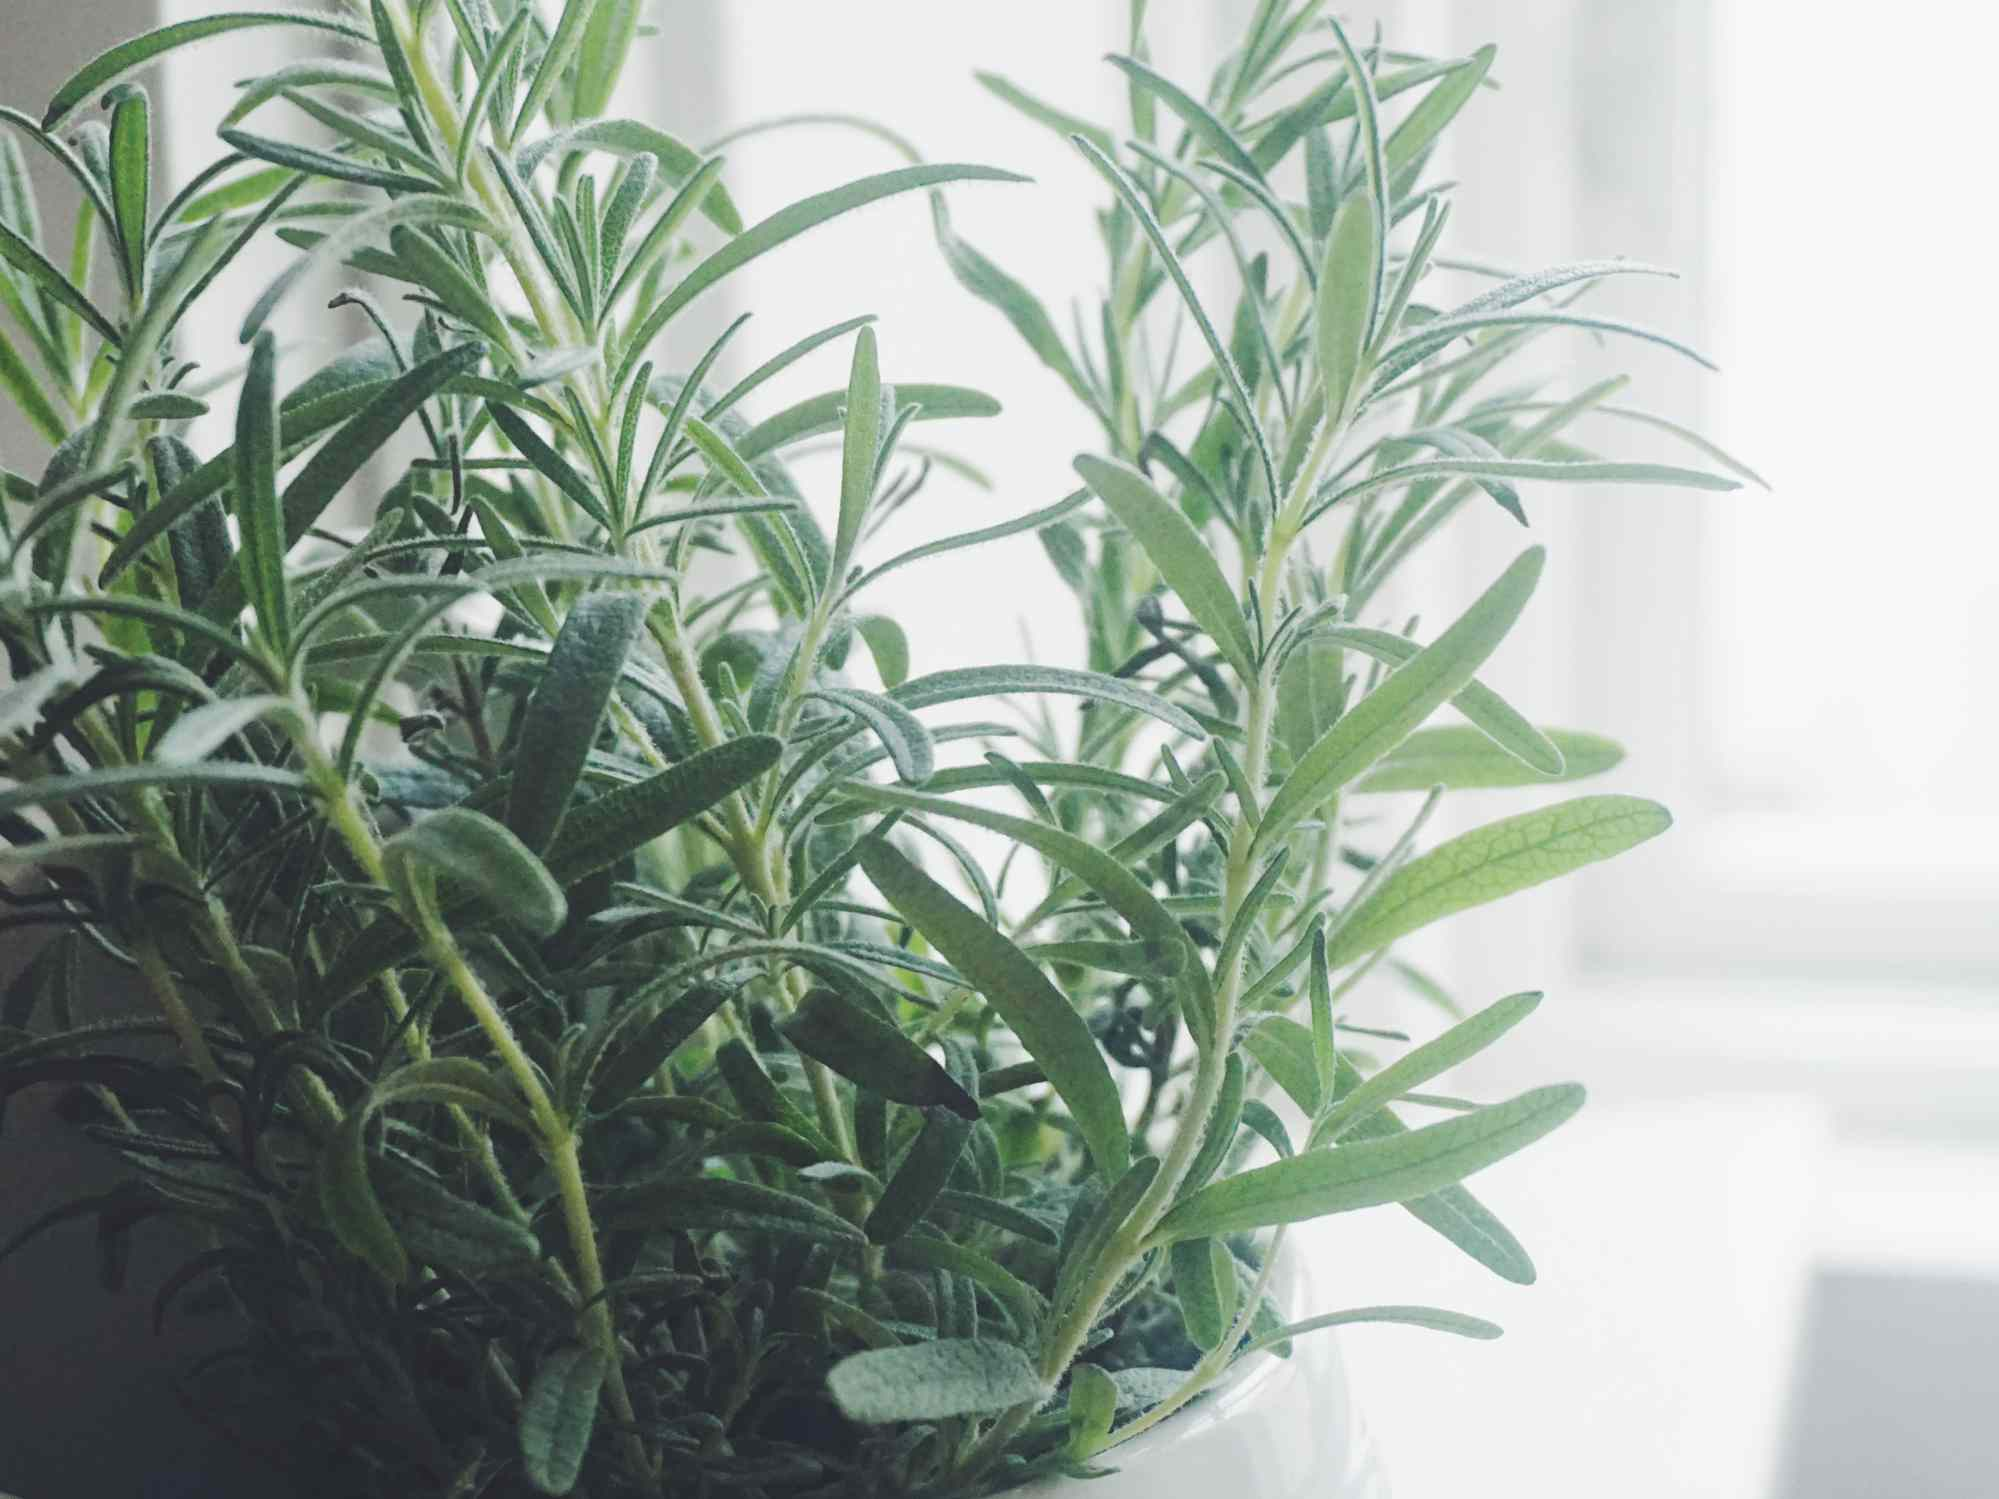 Close up of rosemary plant in container